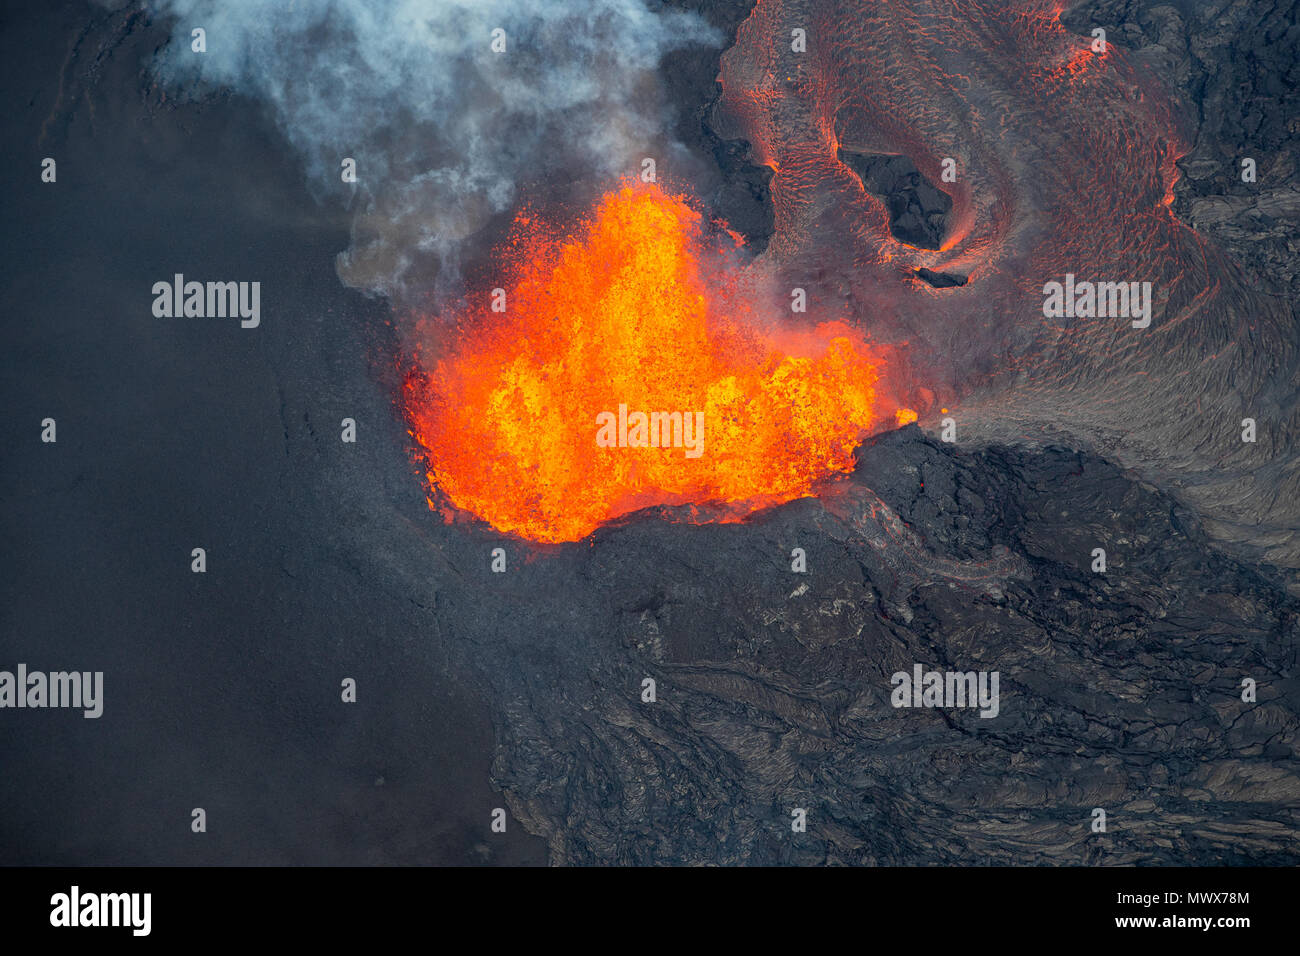 Pahoa, HI, USA. 2nd June, 2018. Fissure 8 photographed during eruption of Hawaii's Kilauea Volcano in Pahoa, HI on June 2, 2018. Credit: Erik Kabik Photography/Media Punch/Alamy Live News - Stock Image